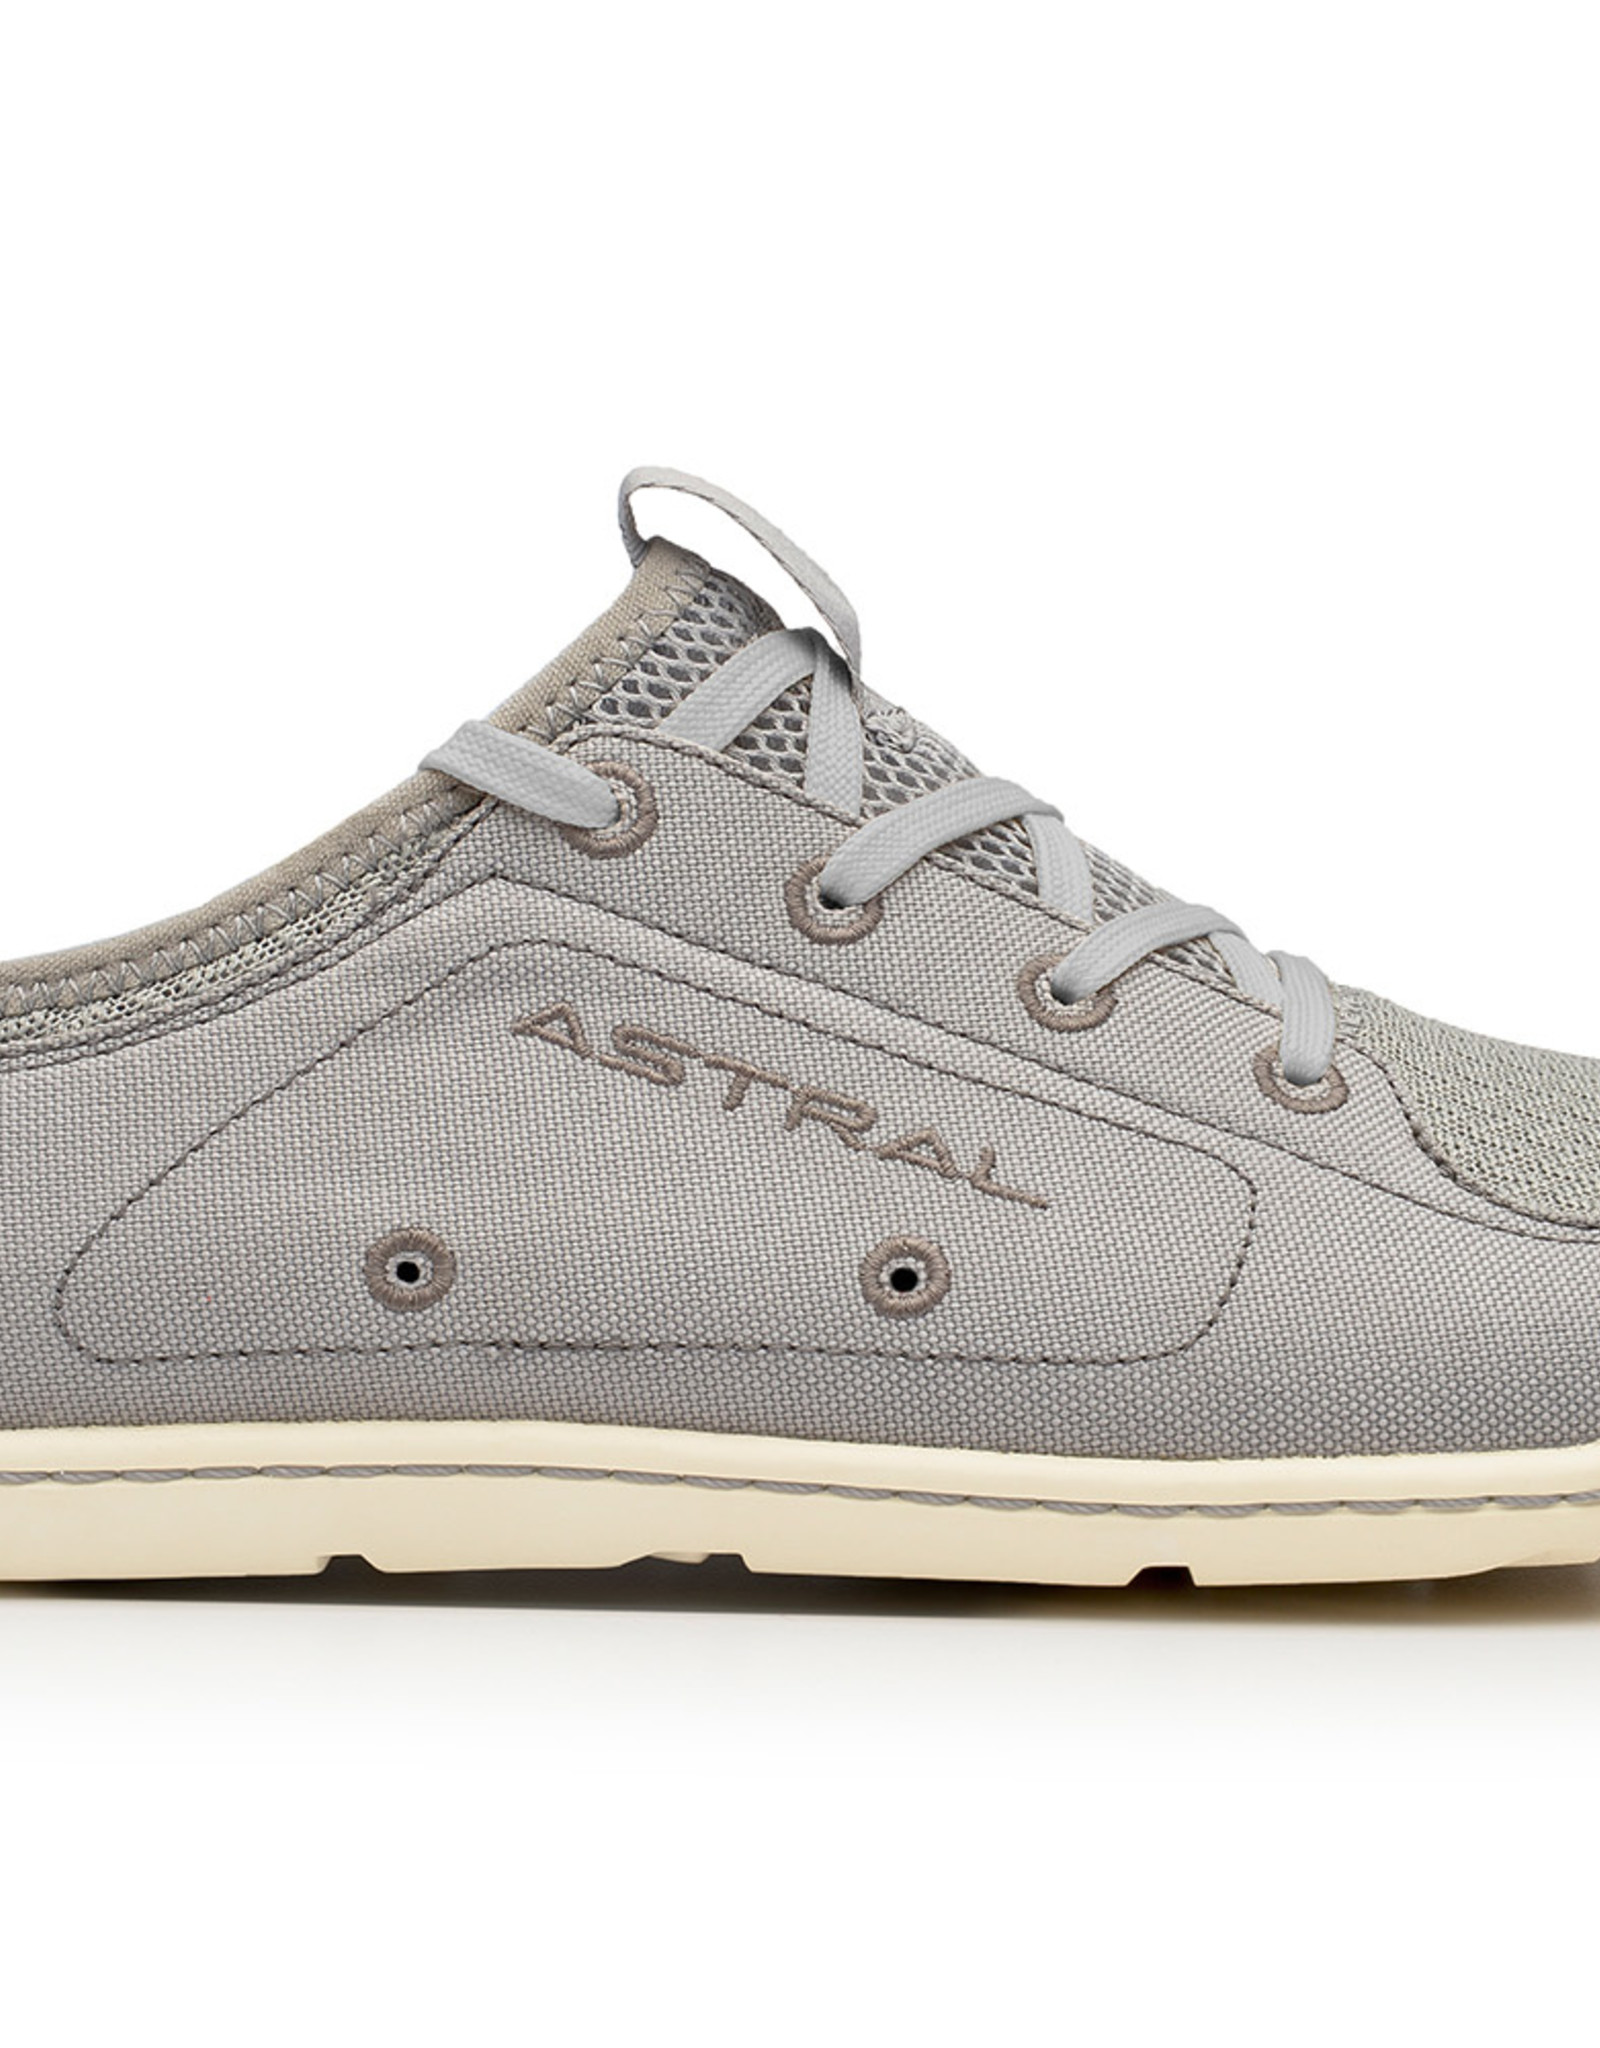 Astral WOMEN'S ASTRAL LOYAK WATER SHOE-GREY/WHITE